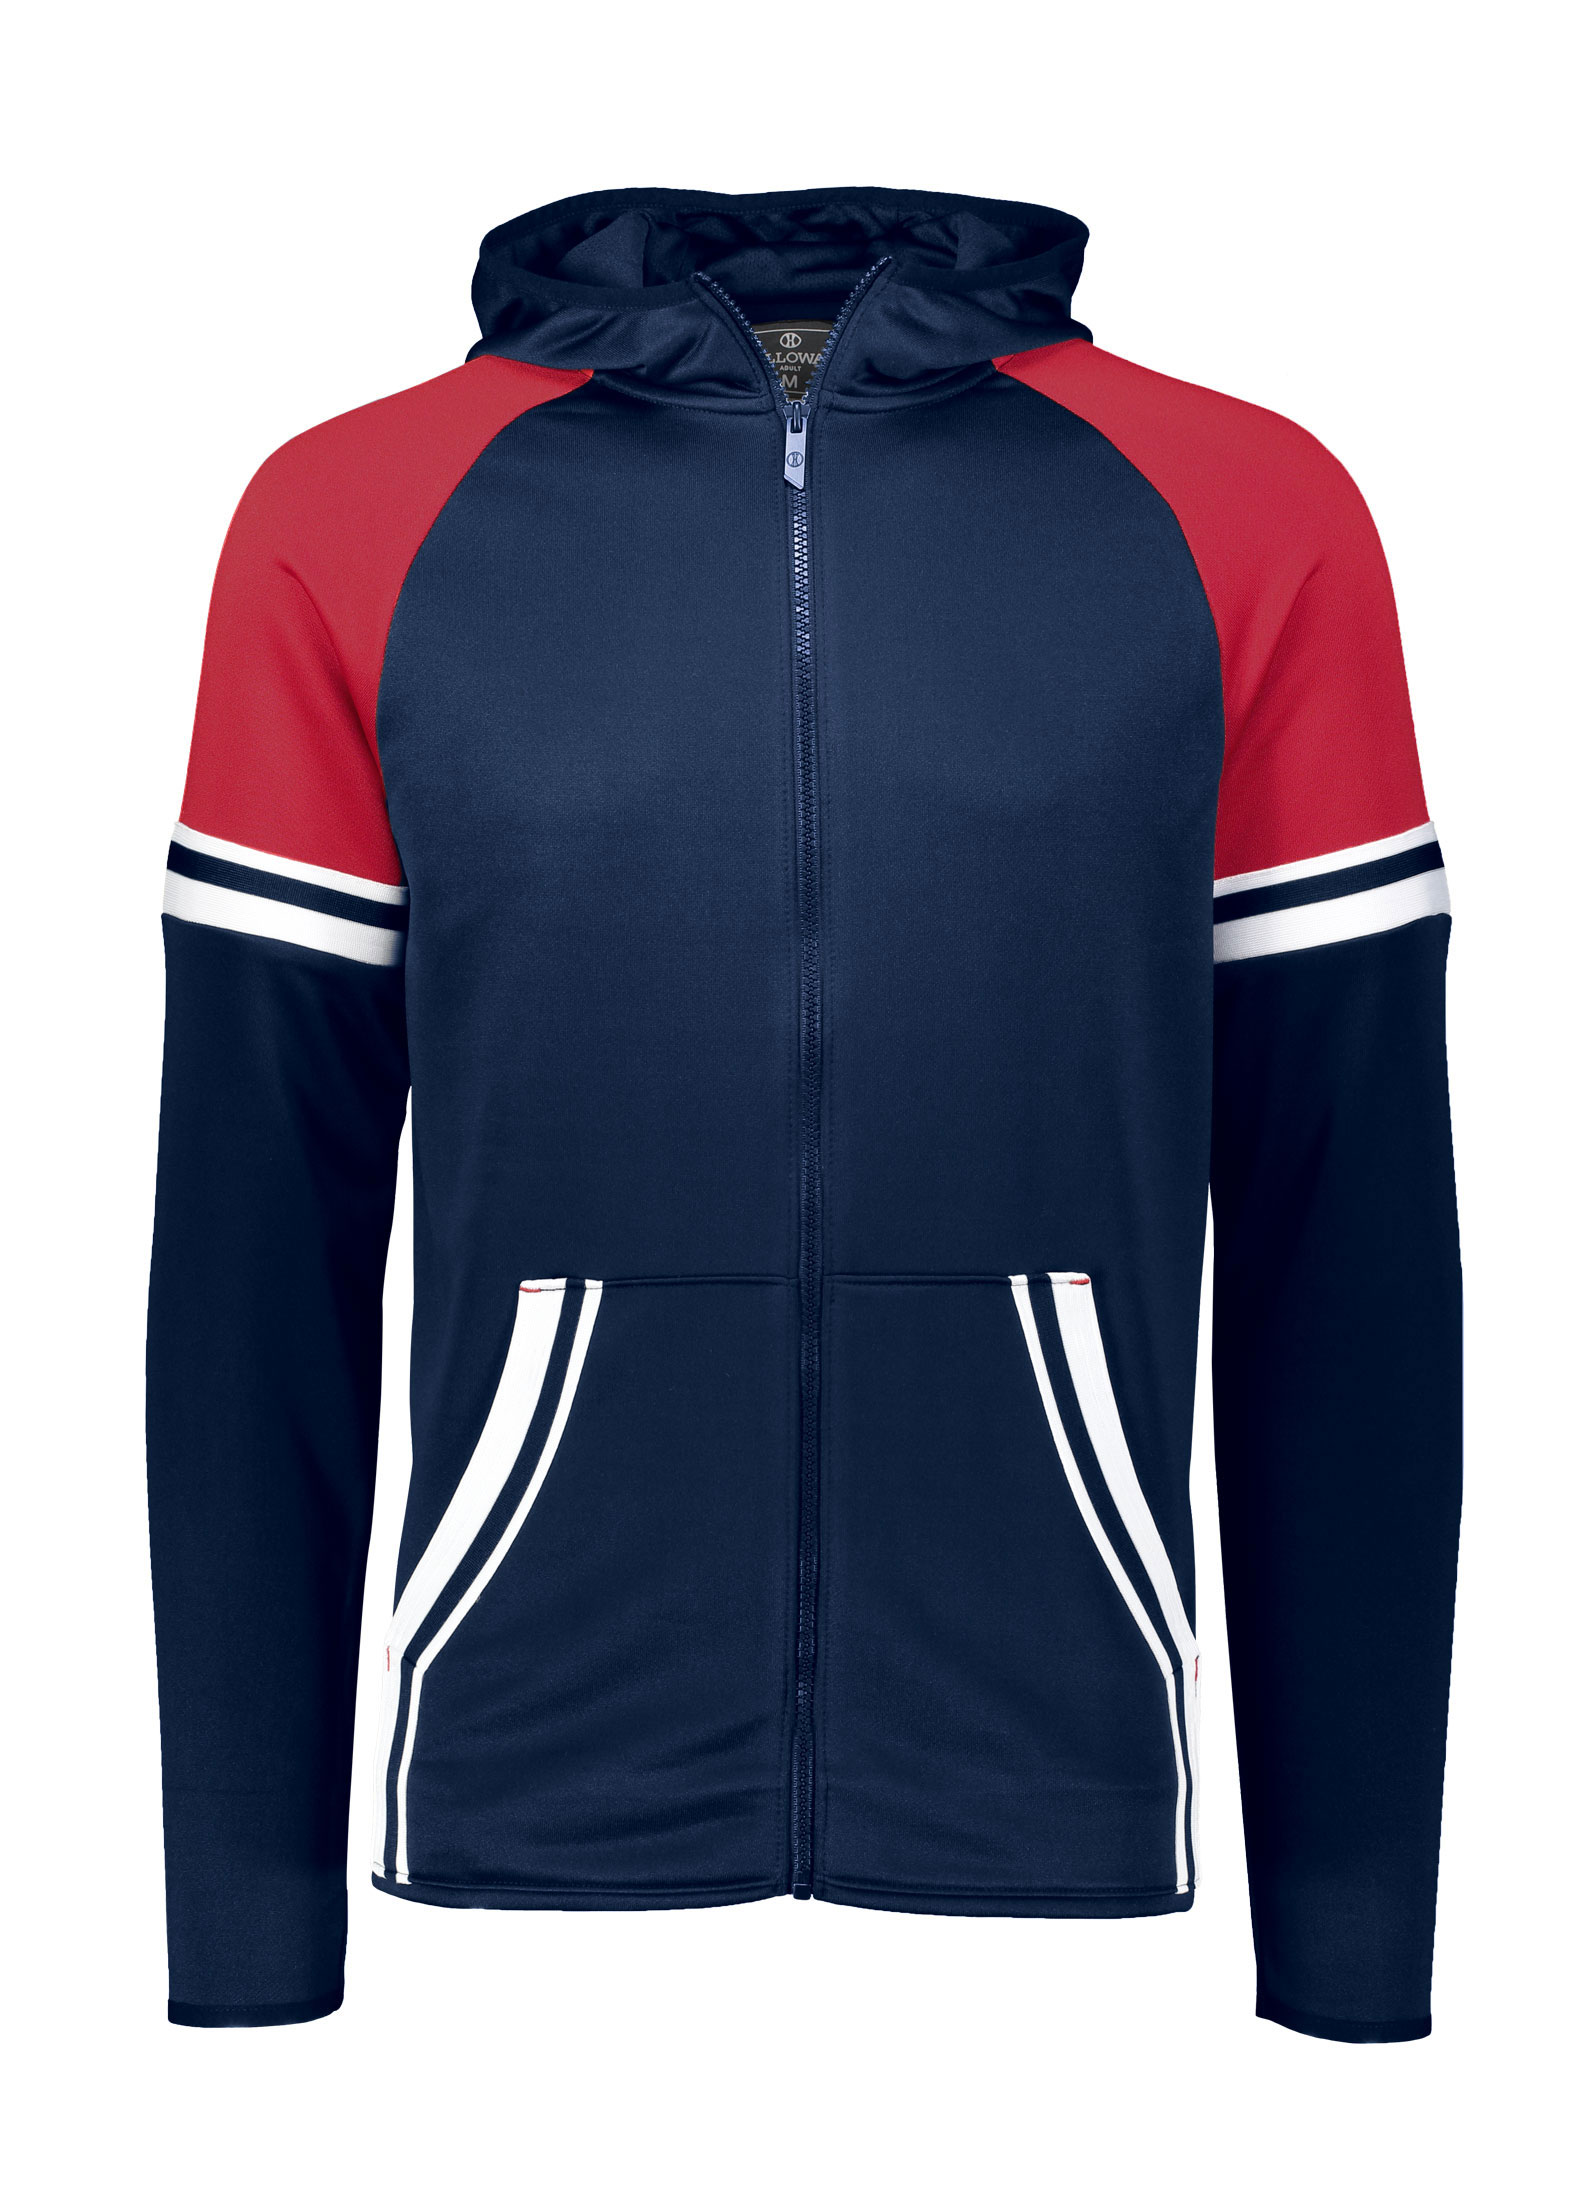 Holloway Adult Retro Grade Jacket